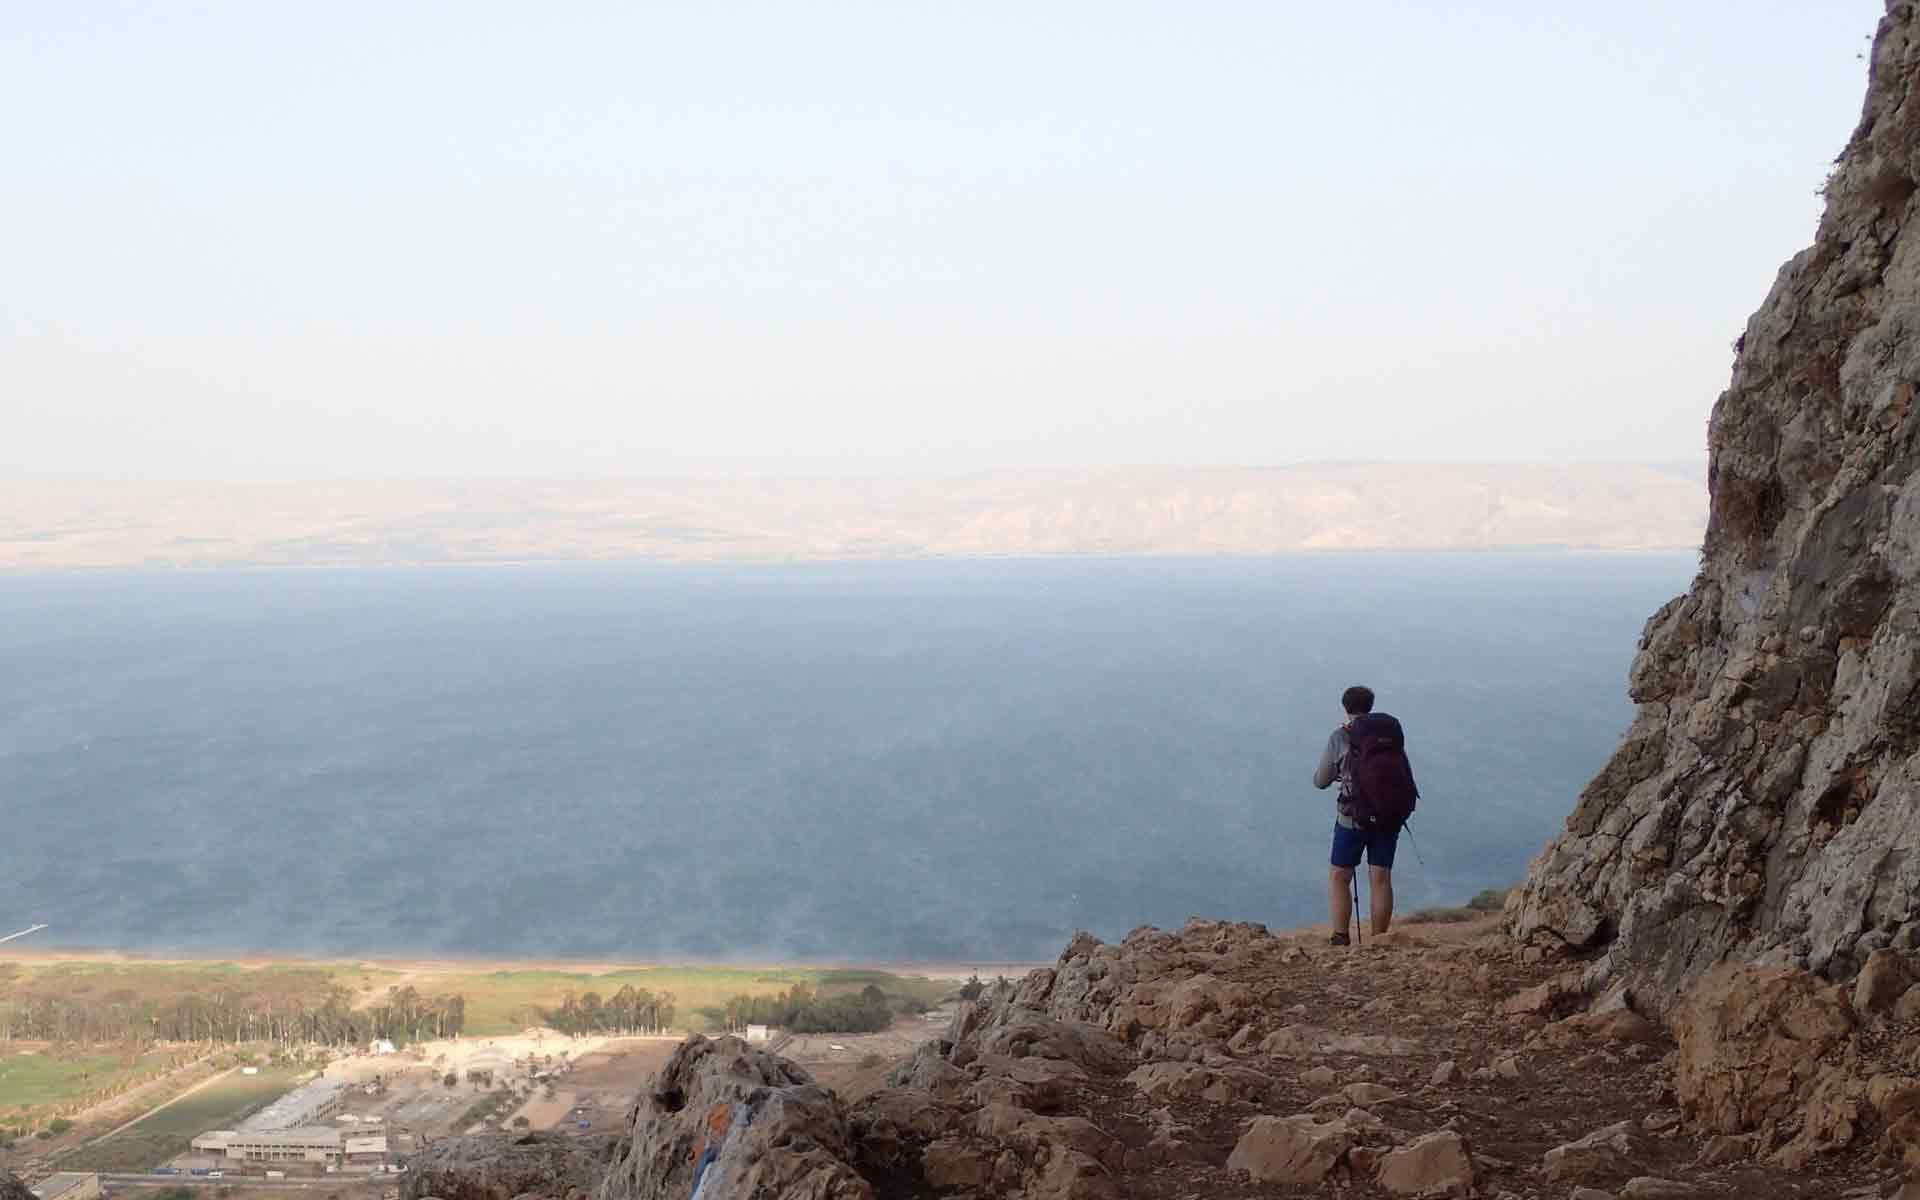 https://etchrock.com/Hiking 1000km, the length of Israel